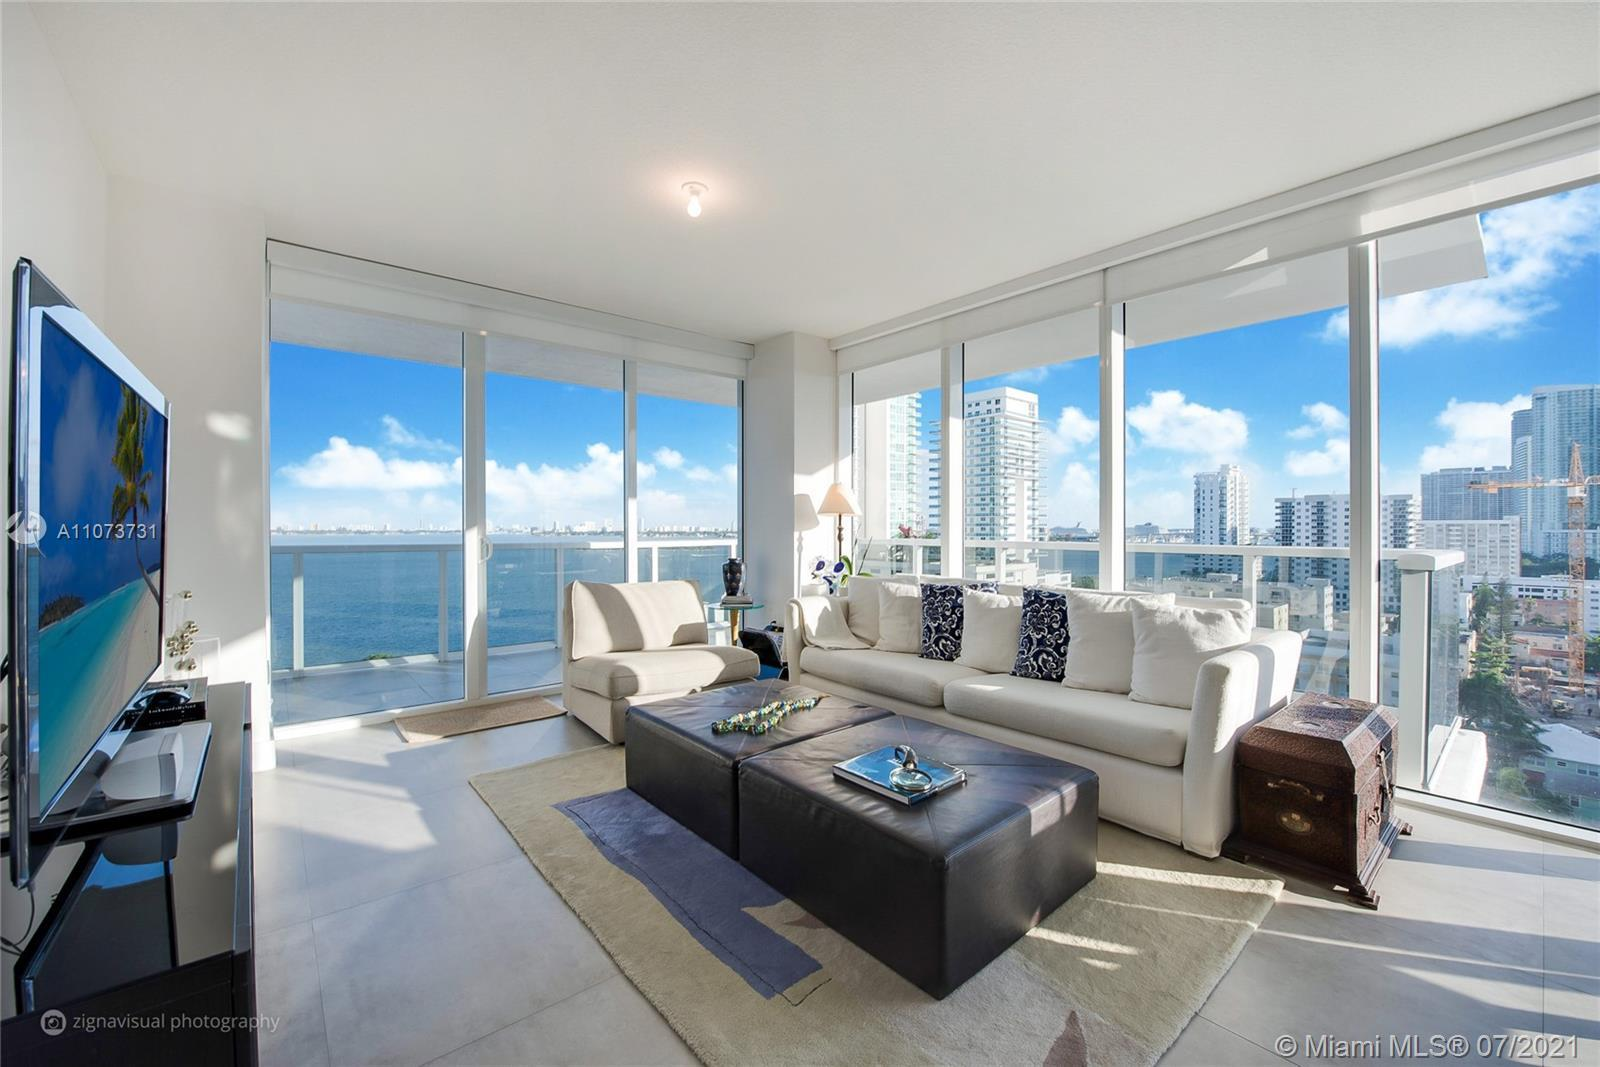 Corner, bright 3 bedroom/2.5 bathroom unit in Bay House in Edgewater. Gorgeous view of the city and